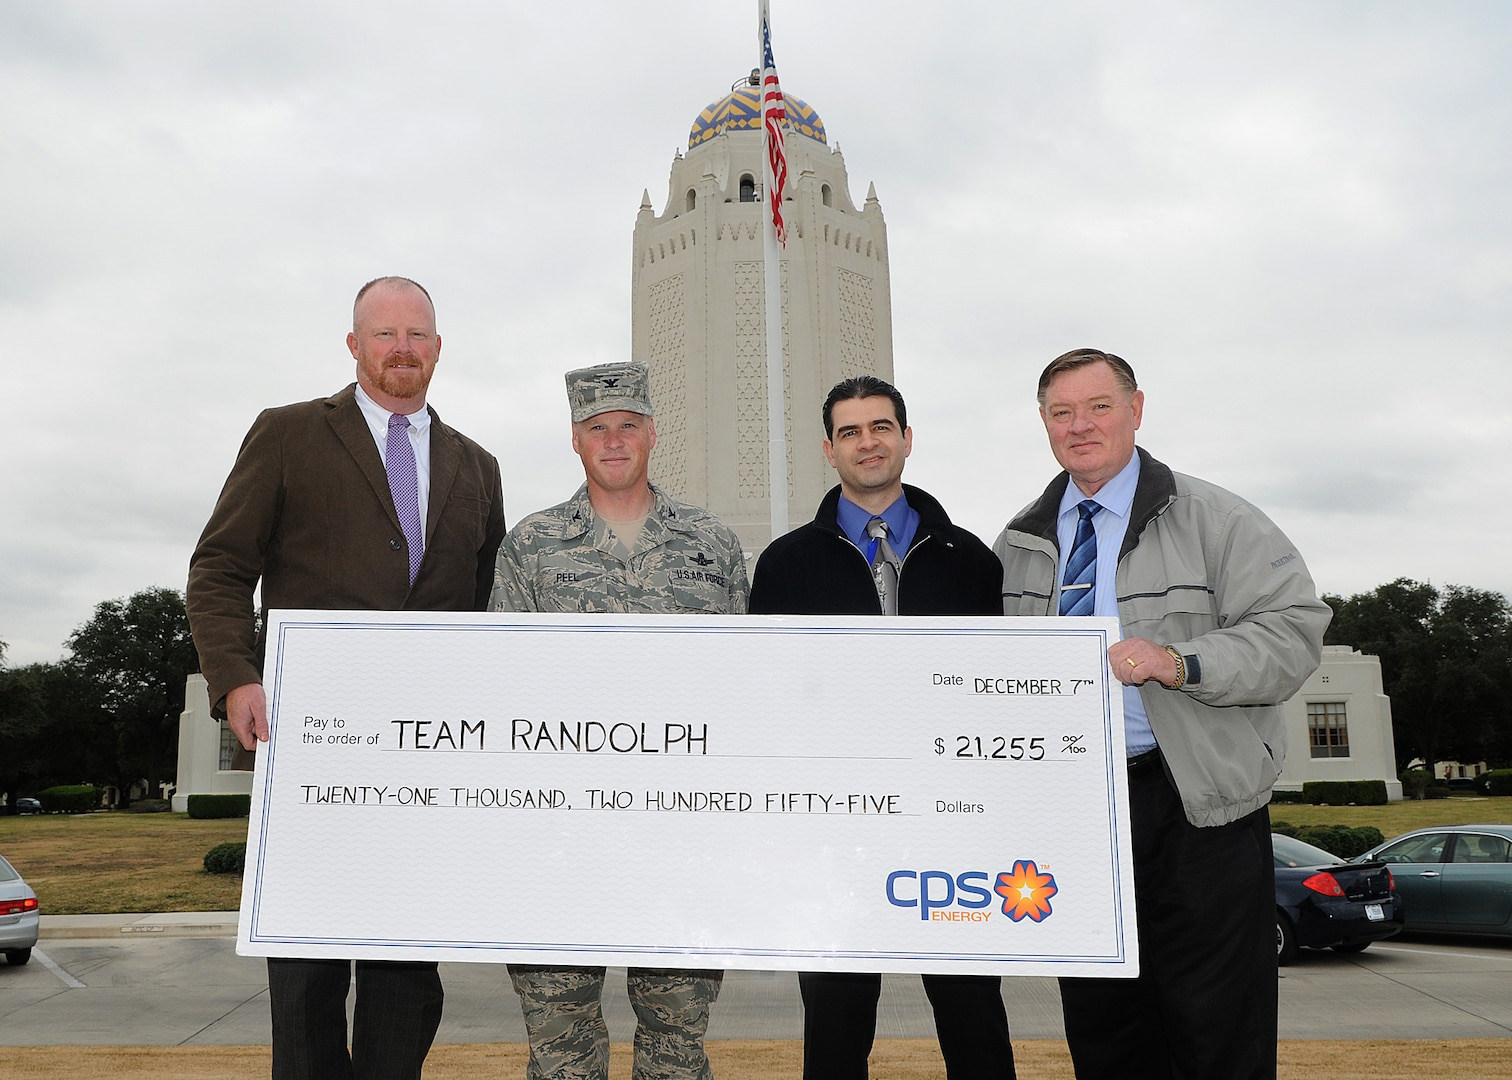 Randolph AFB, TX,2010/12/07:  A check for $21,255 is presented to Air Force representatives by John Barrow, Energy Solutions Manager CPS Energy. The check is a demand response energy credit for energy savings at the base. In the photo, from left, are Barrow, Colonel Scott Peel, 902nd Mission Support Group commander, Ruben D. Ramos Jr., Utilities Engineer 902nd Civil Engineers, and Jim Wimberley, Chief Asset Optimization, 902nd Civil Engineers.  (U.S. Air Force photo/Dave Terry)